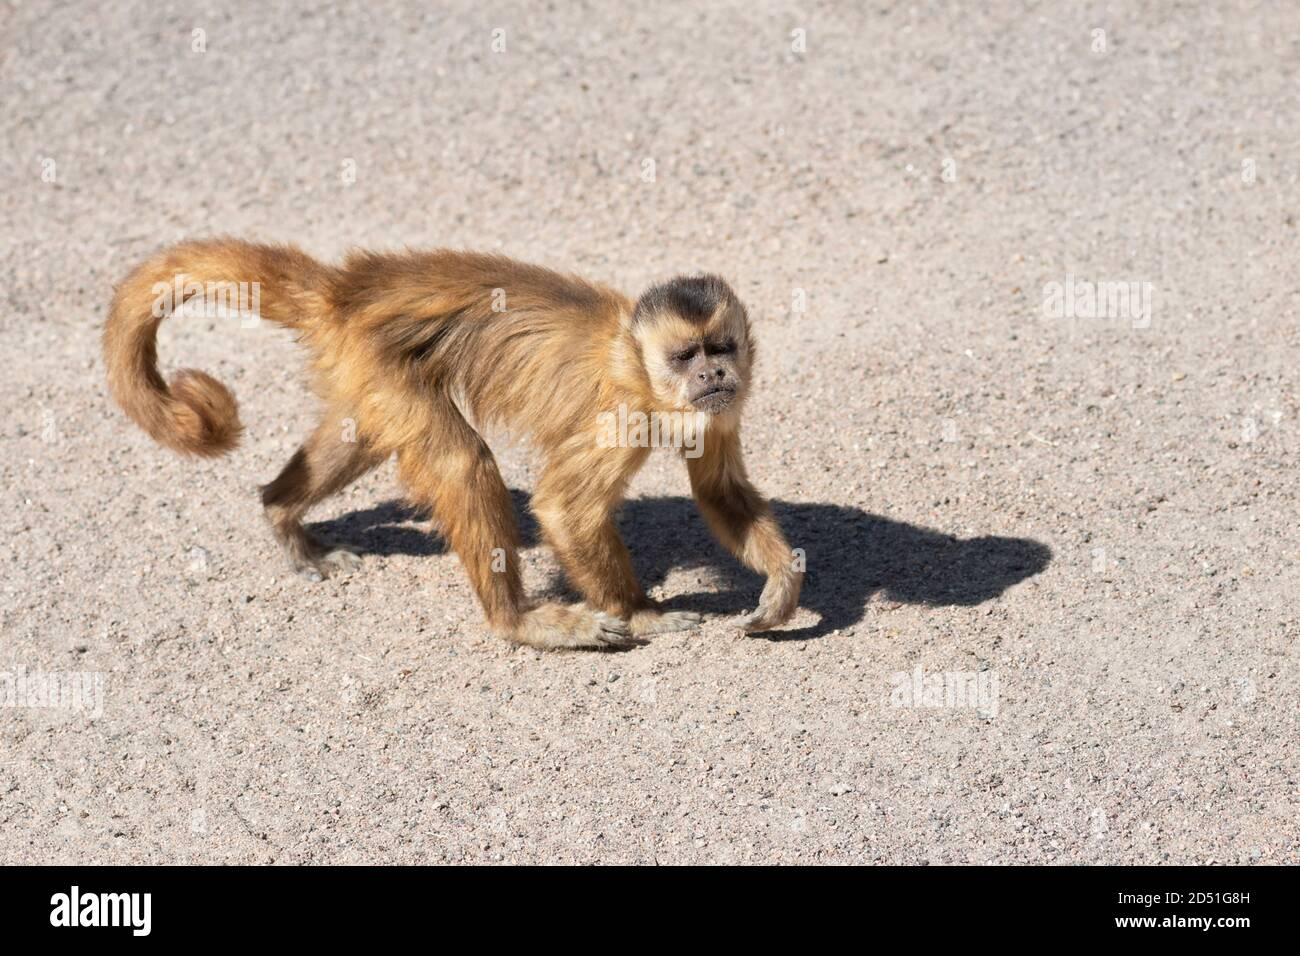 Capuchin monkey in zoo close up. The capuchin monkeys are New World monkeys of the subfamily Cebinae. Stock Photo